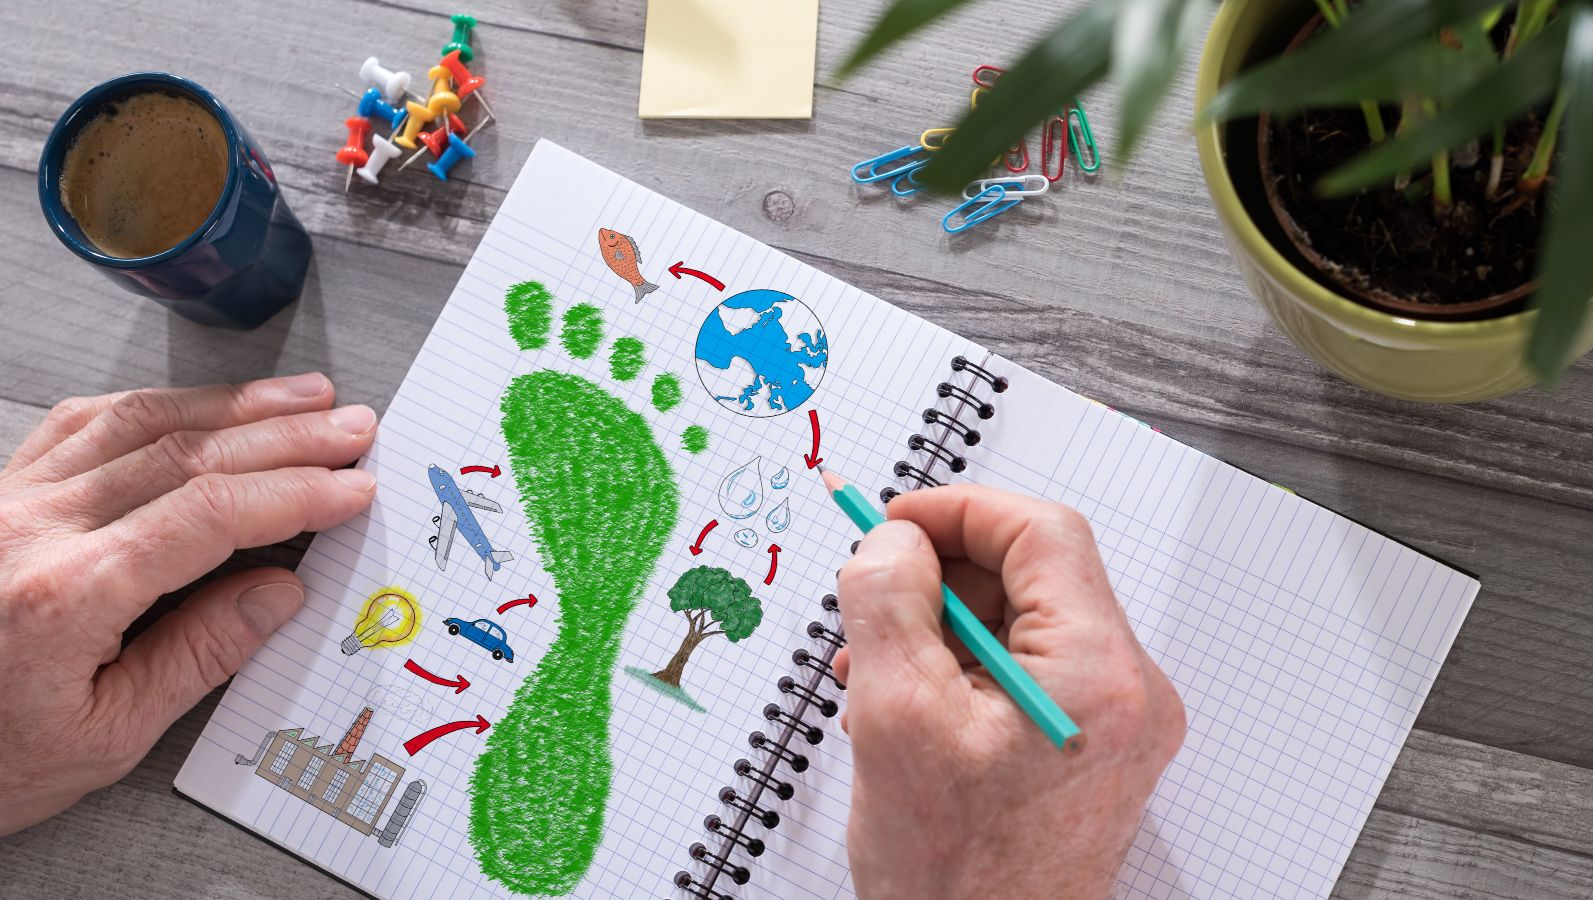 A person holding a recorded notebook and a pen on a desk with various writing utensils. On the side of the notebook there are drawings related to the bioeconomy and the environment, e.g. a green footprint.